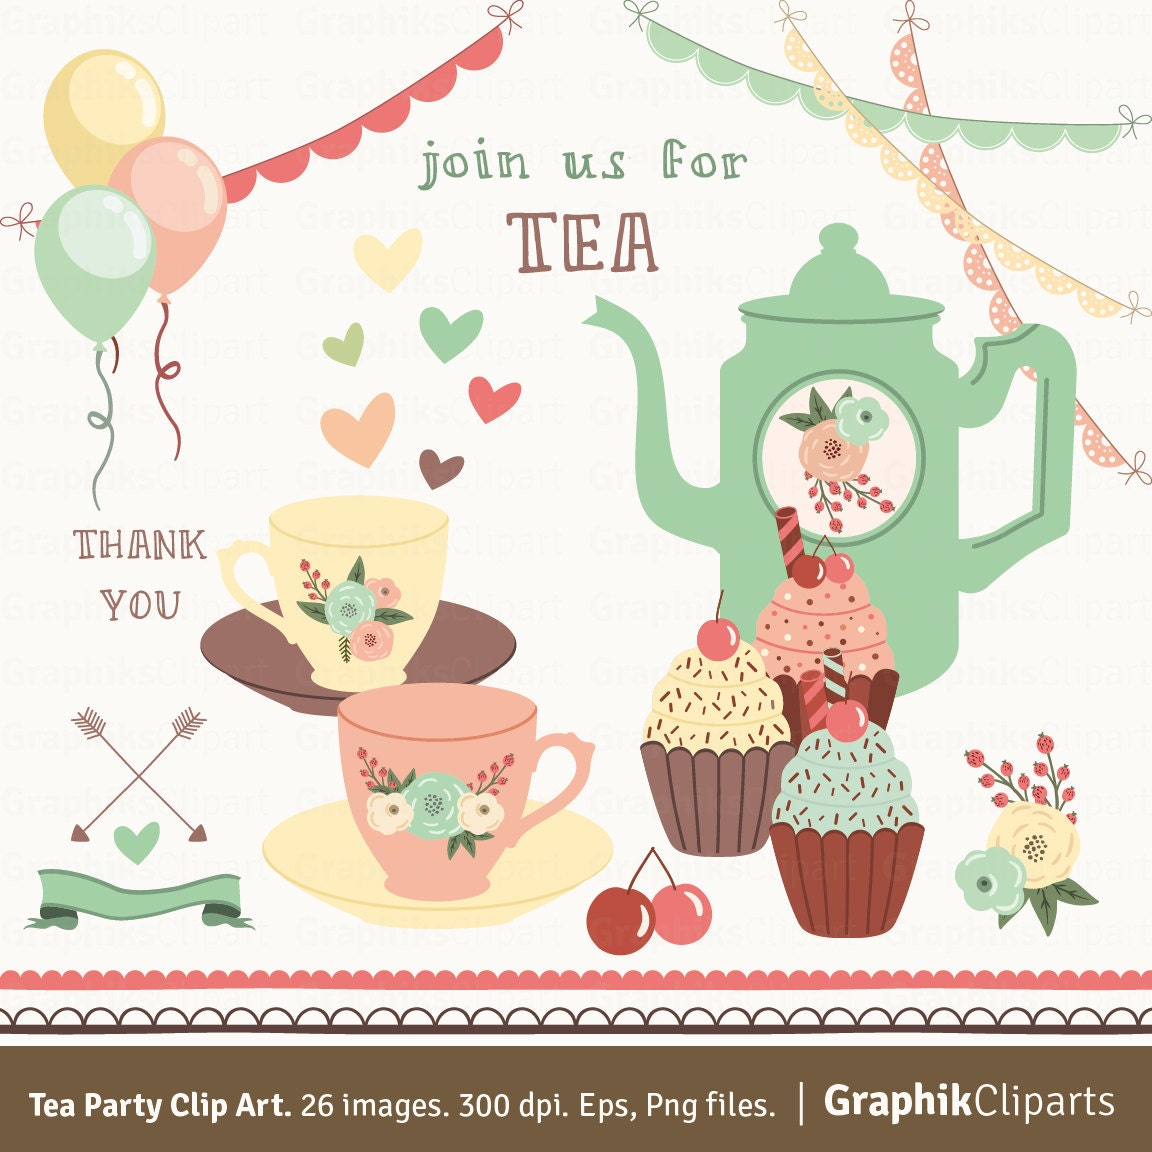 This is an image of Insane Tea Party Clip Art